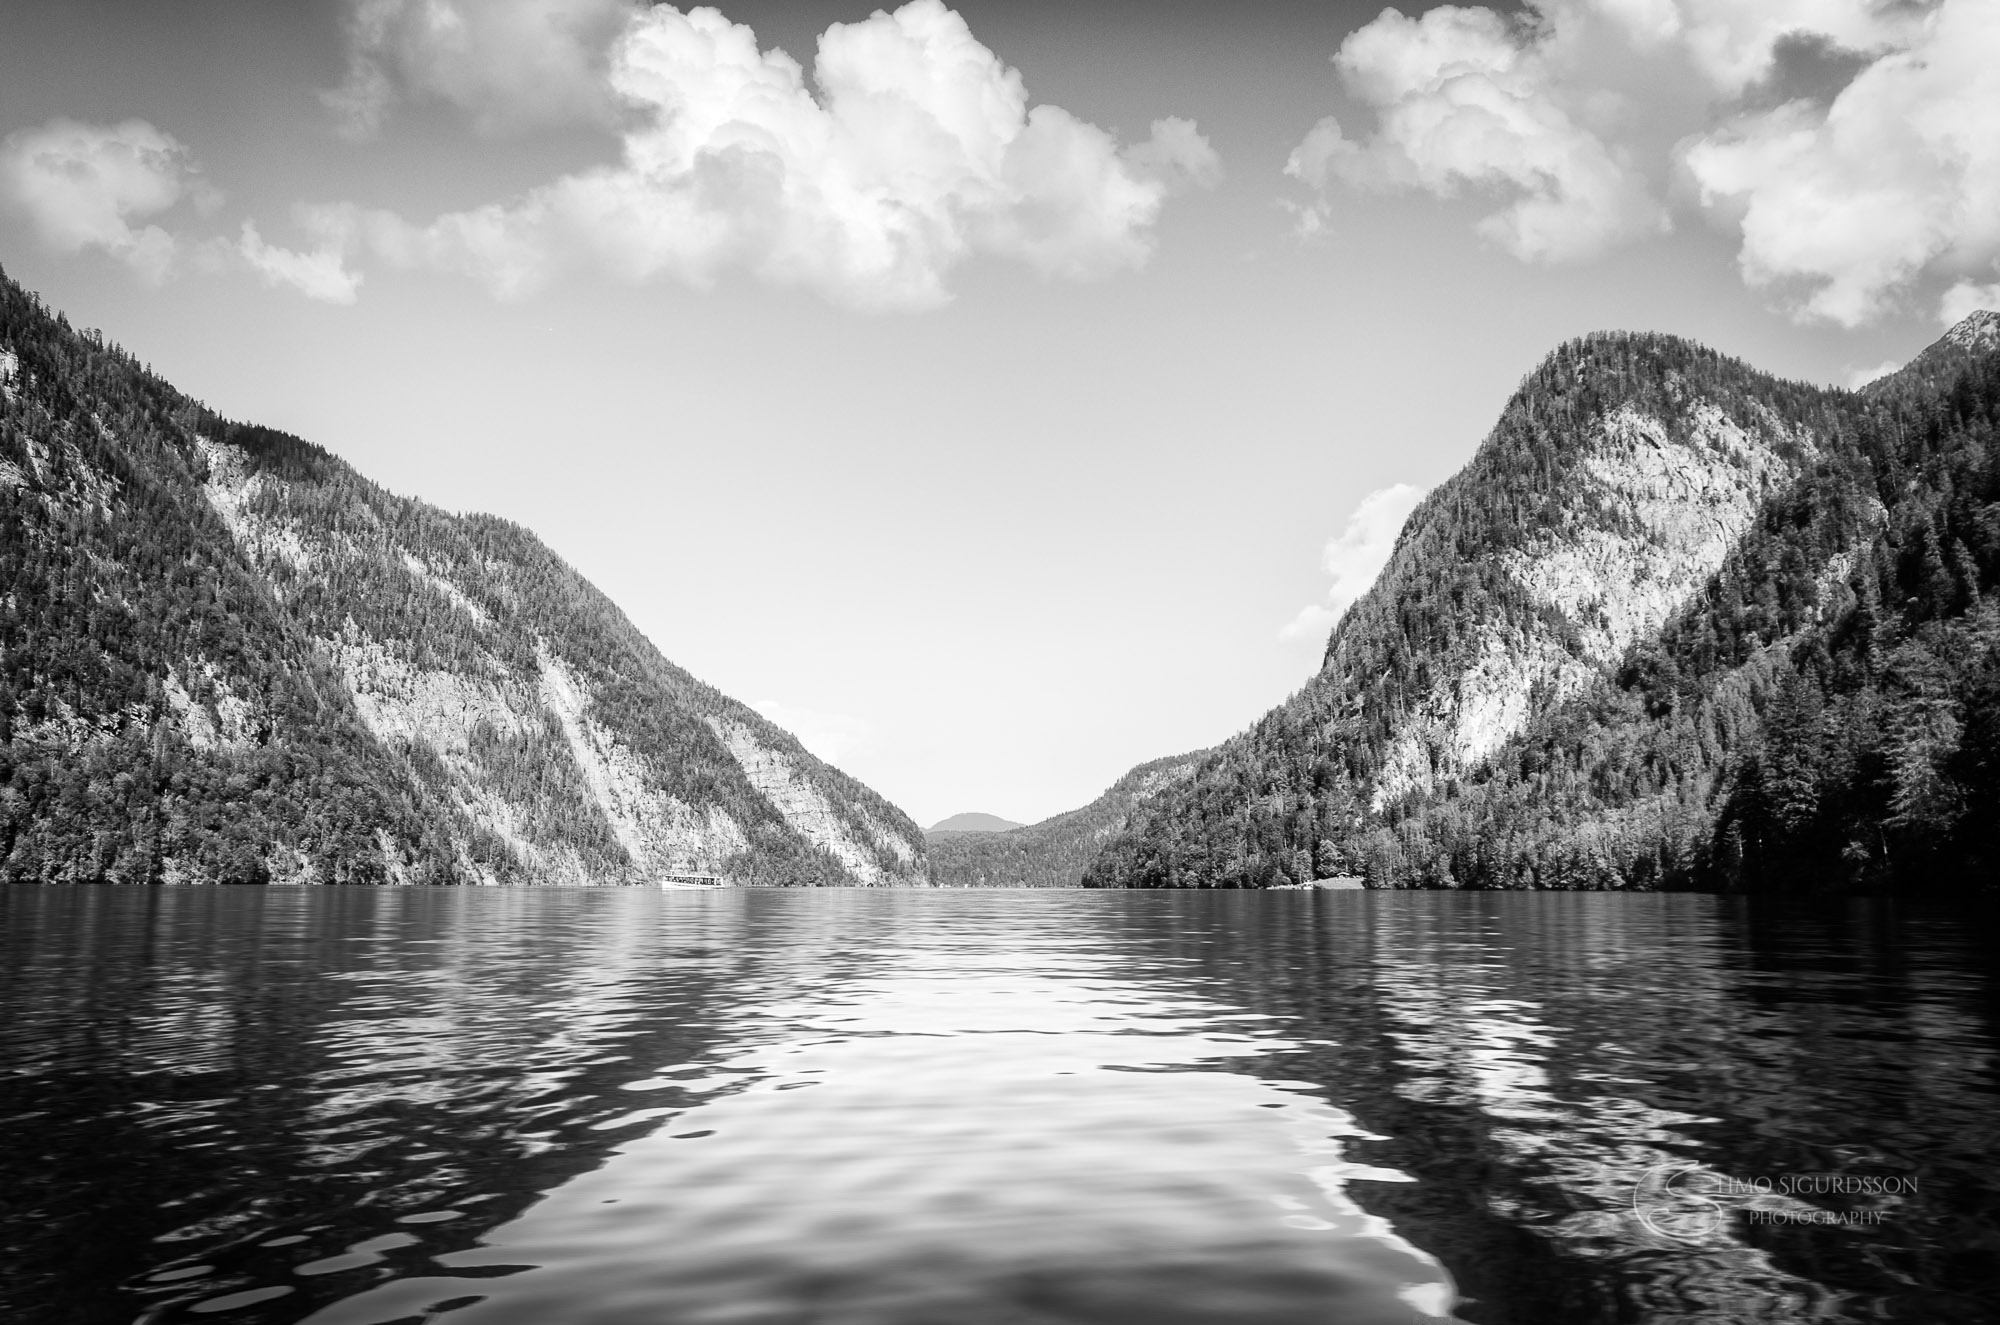 Königssee, Germany. King's lake.